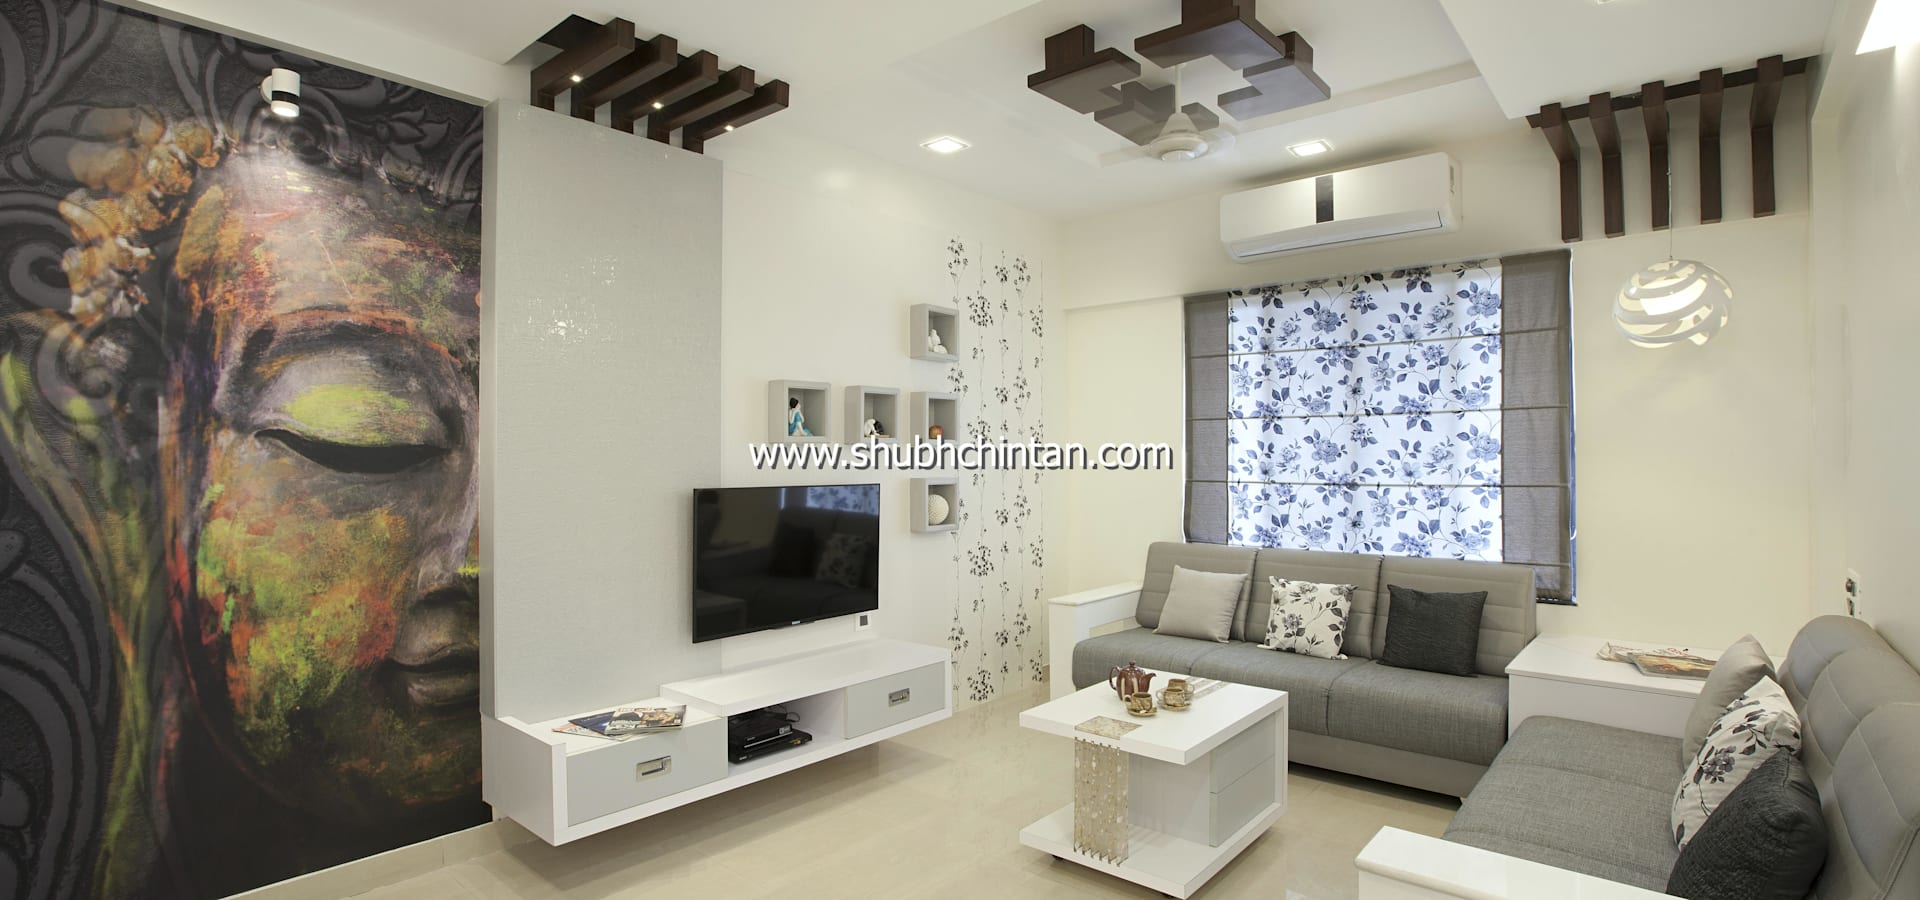 Shubhchintan Interior Architects In Pune Homify